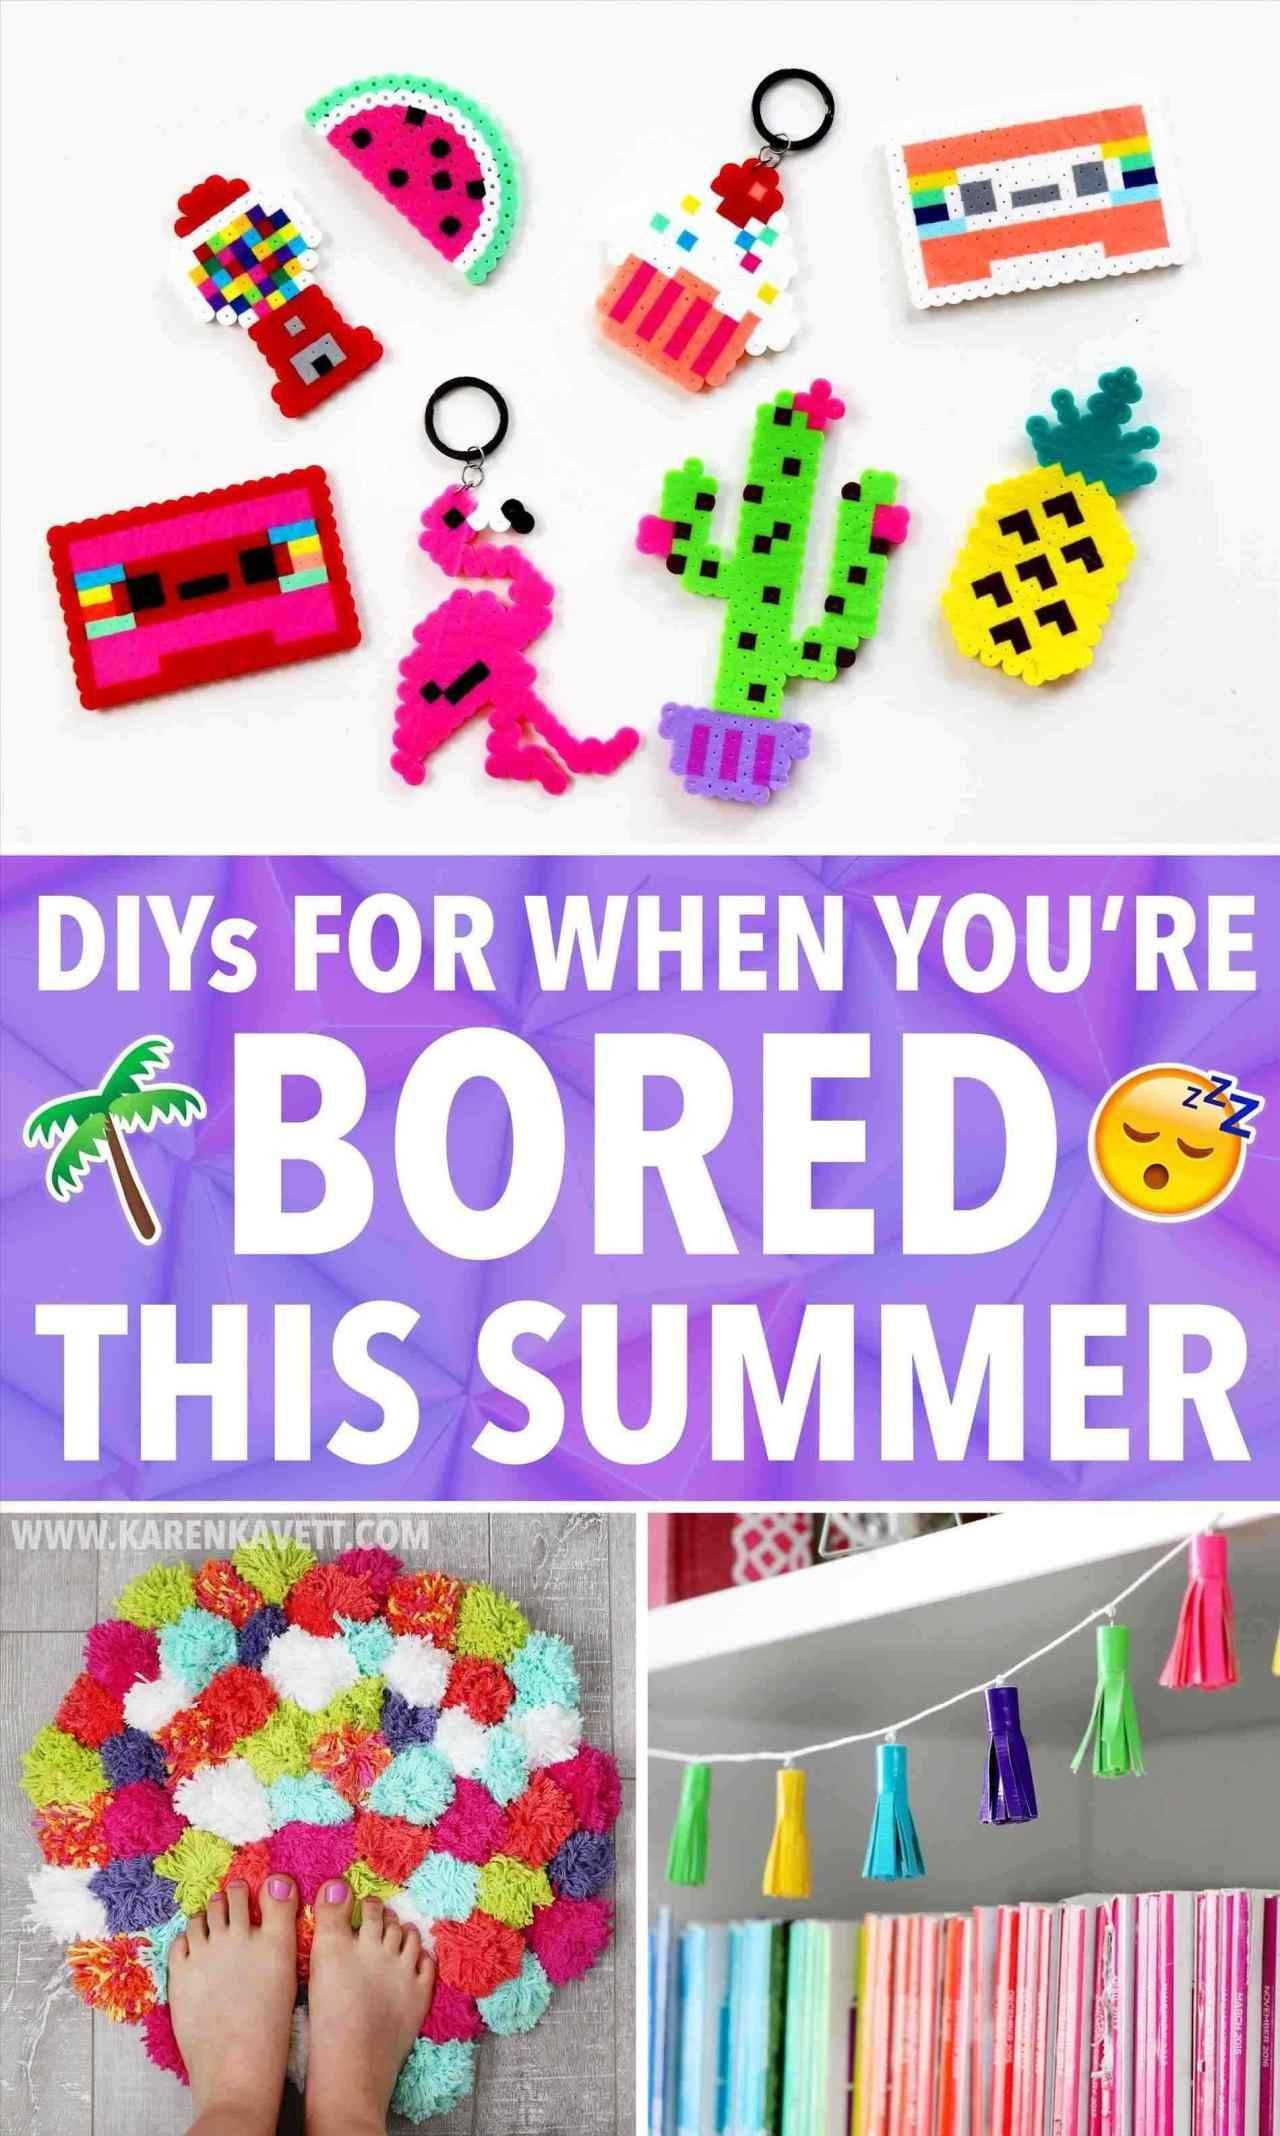 Diys to do at home when bored